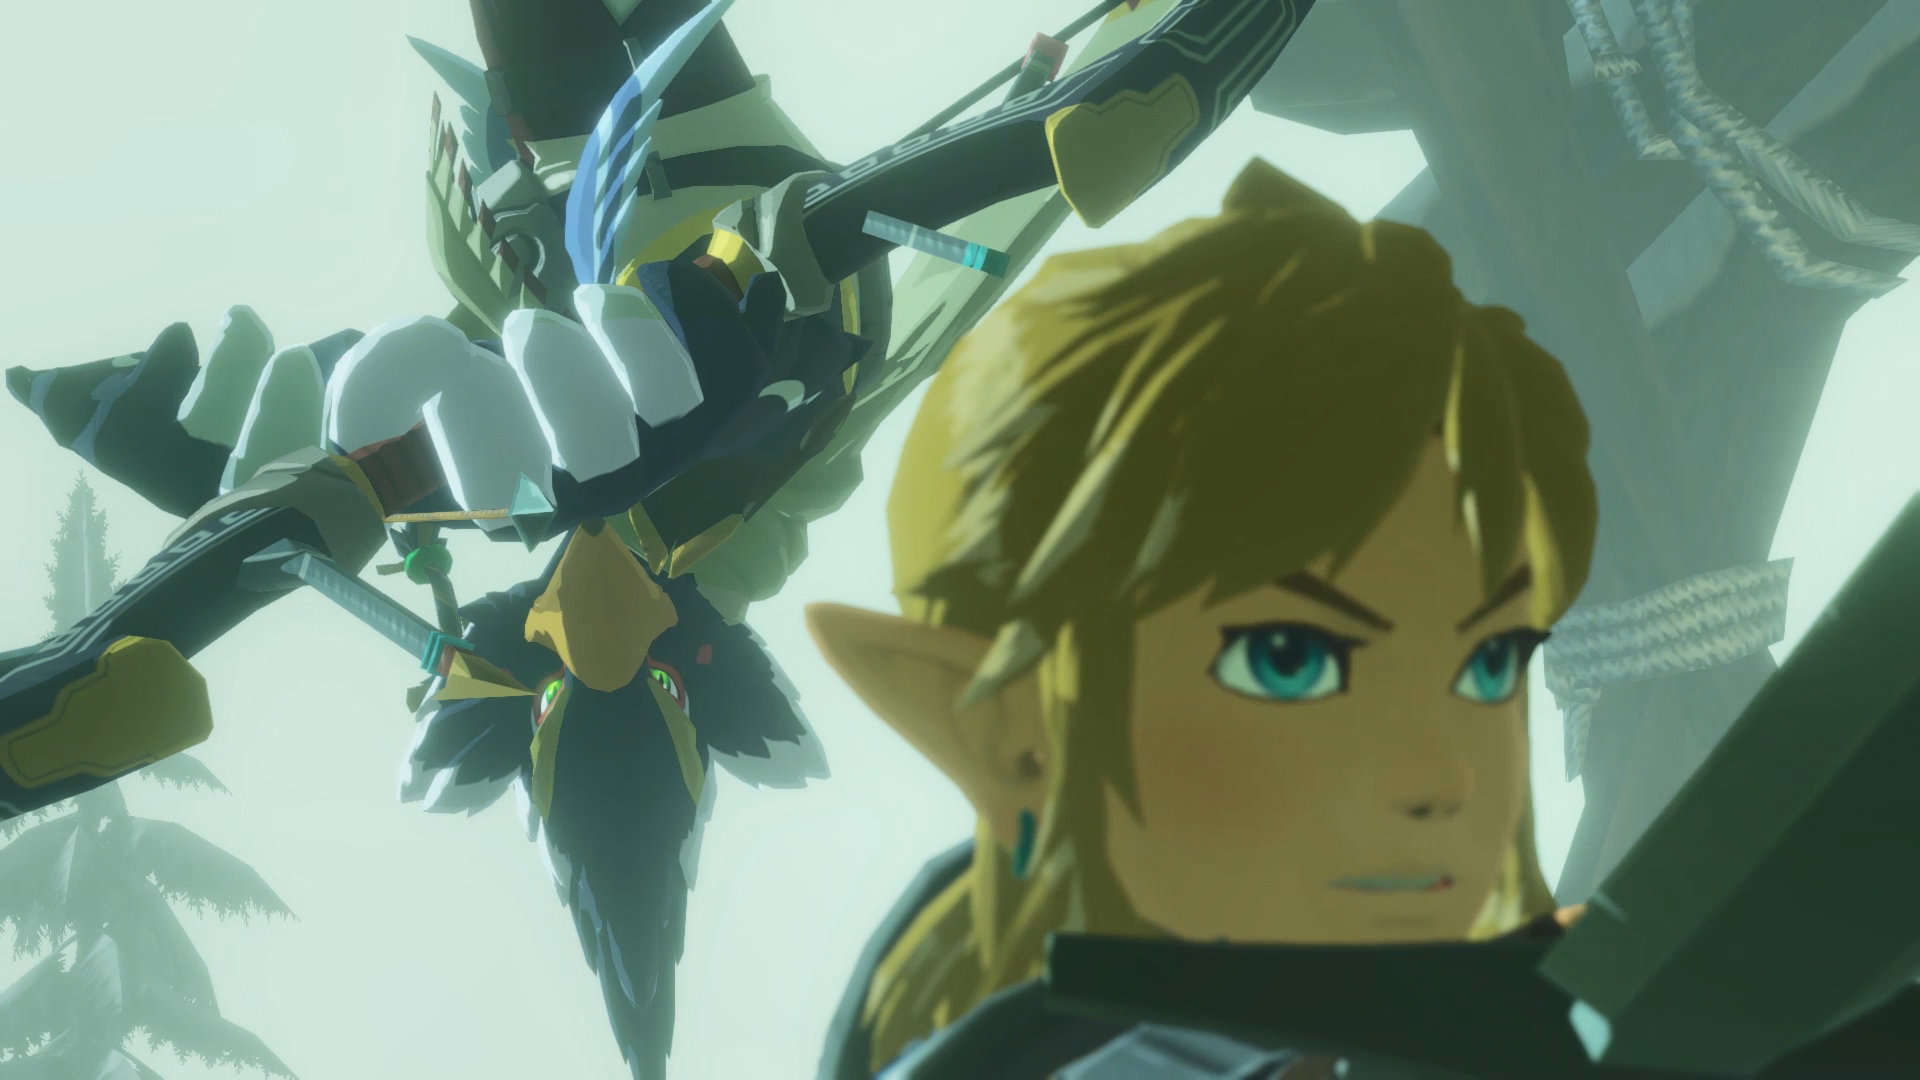 Screenshot From Hyrule Warriors Age Of Calamity Featuring Rito And Link